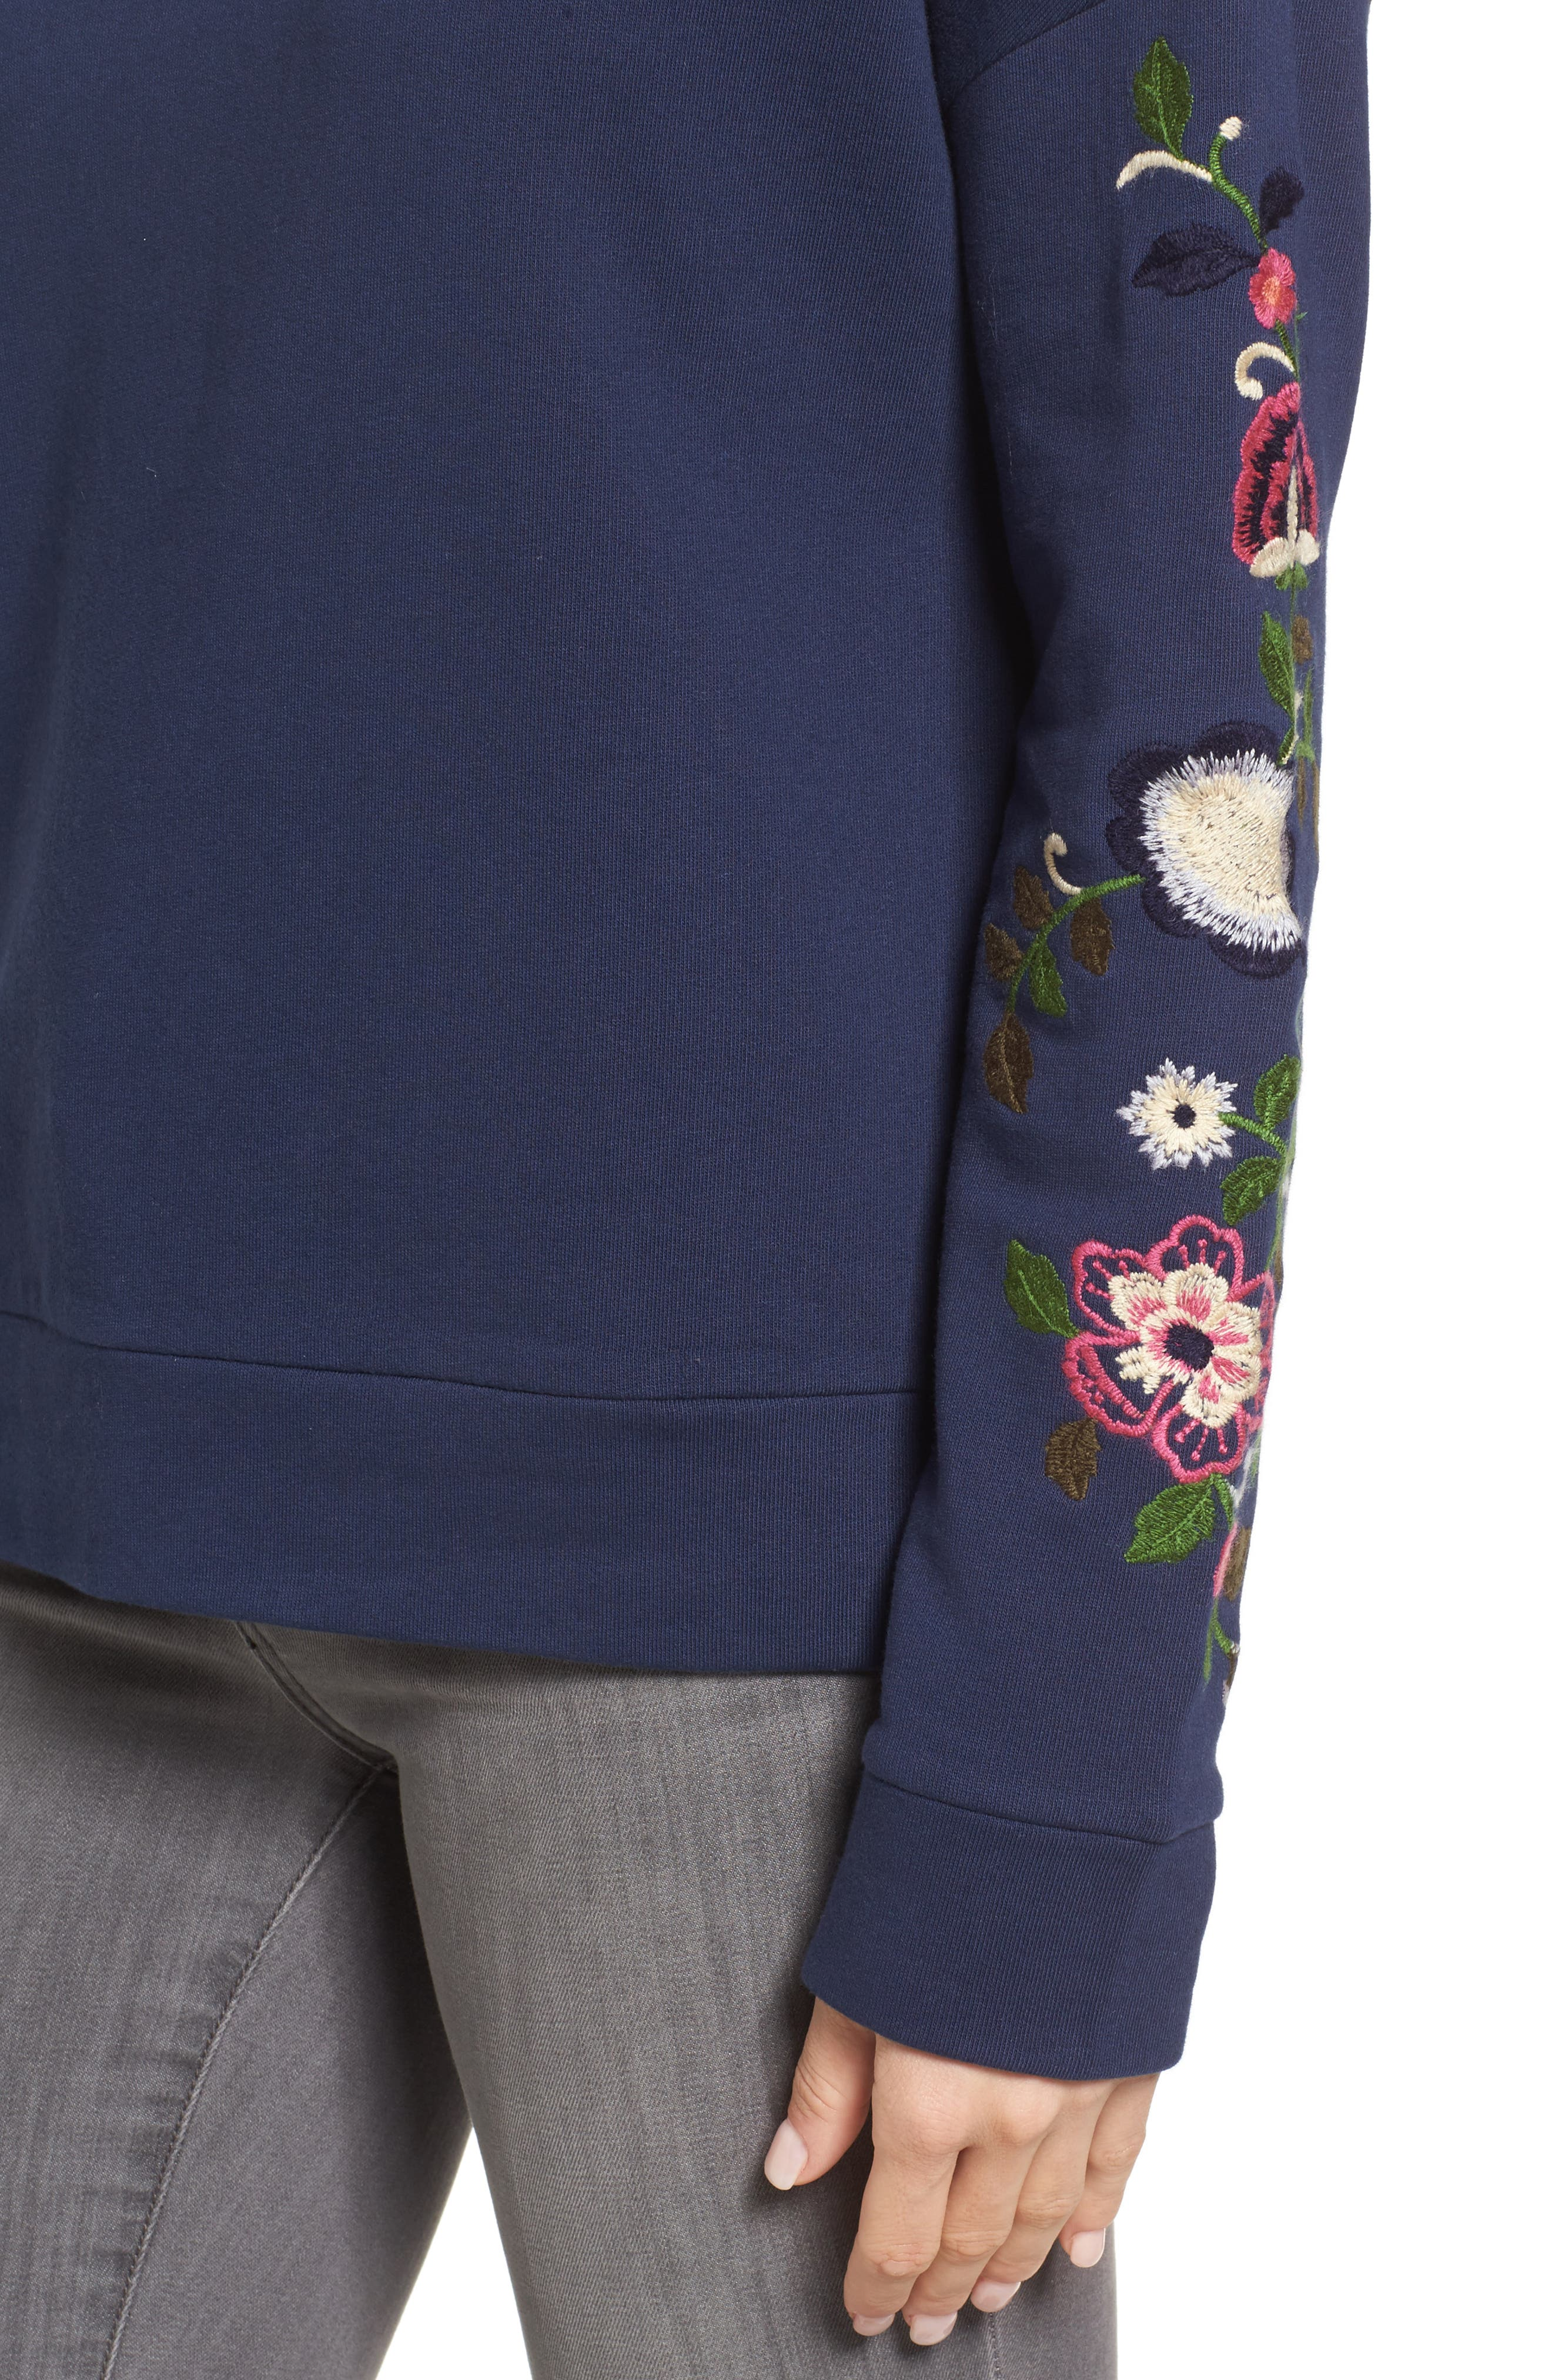 Embroidered Sleeve Sweatshirt,                             Alternate thumbnail 4, color,                             Navy- Rose Floral